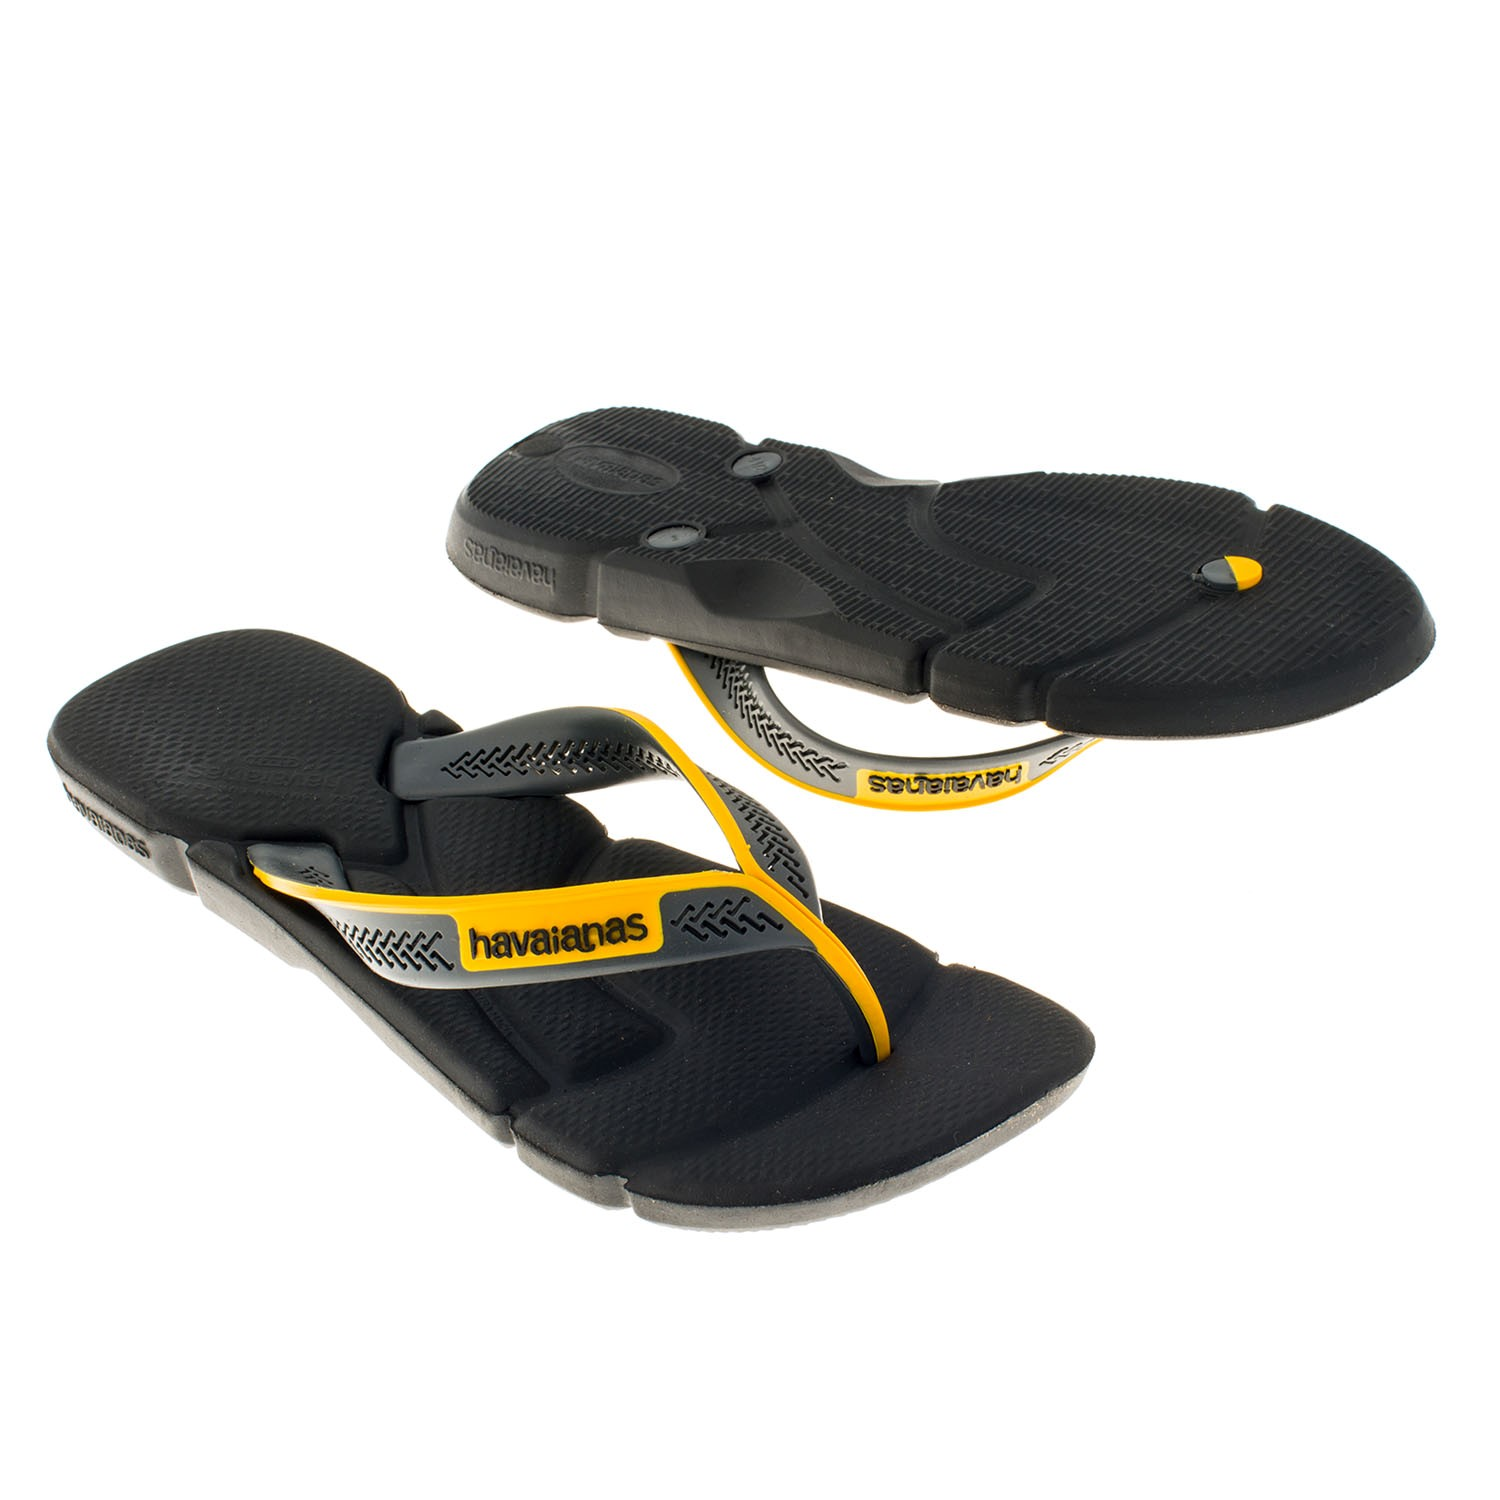 81a27b2ef9c1 Havaianas Power - Slippers - Everyday shoes - Shoes - Timarco.eu